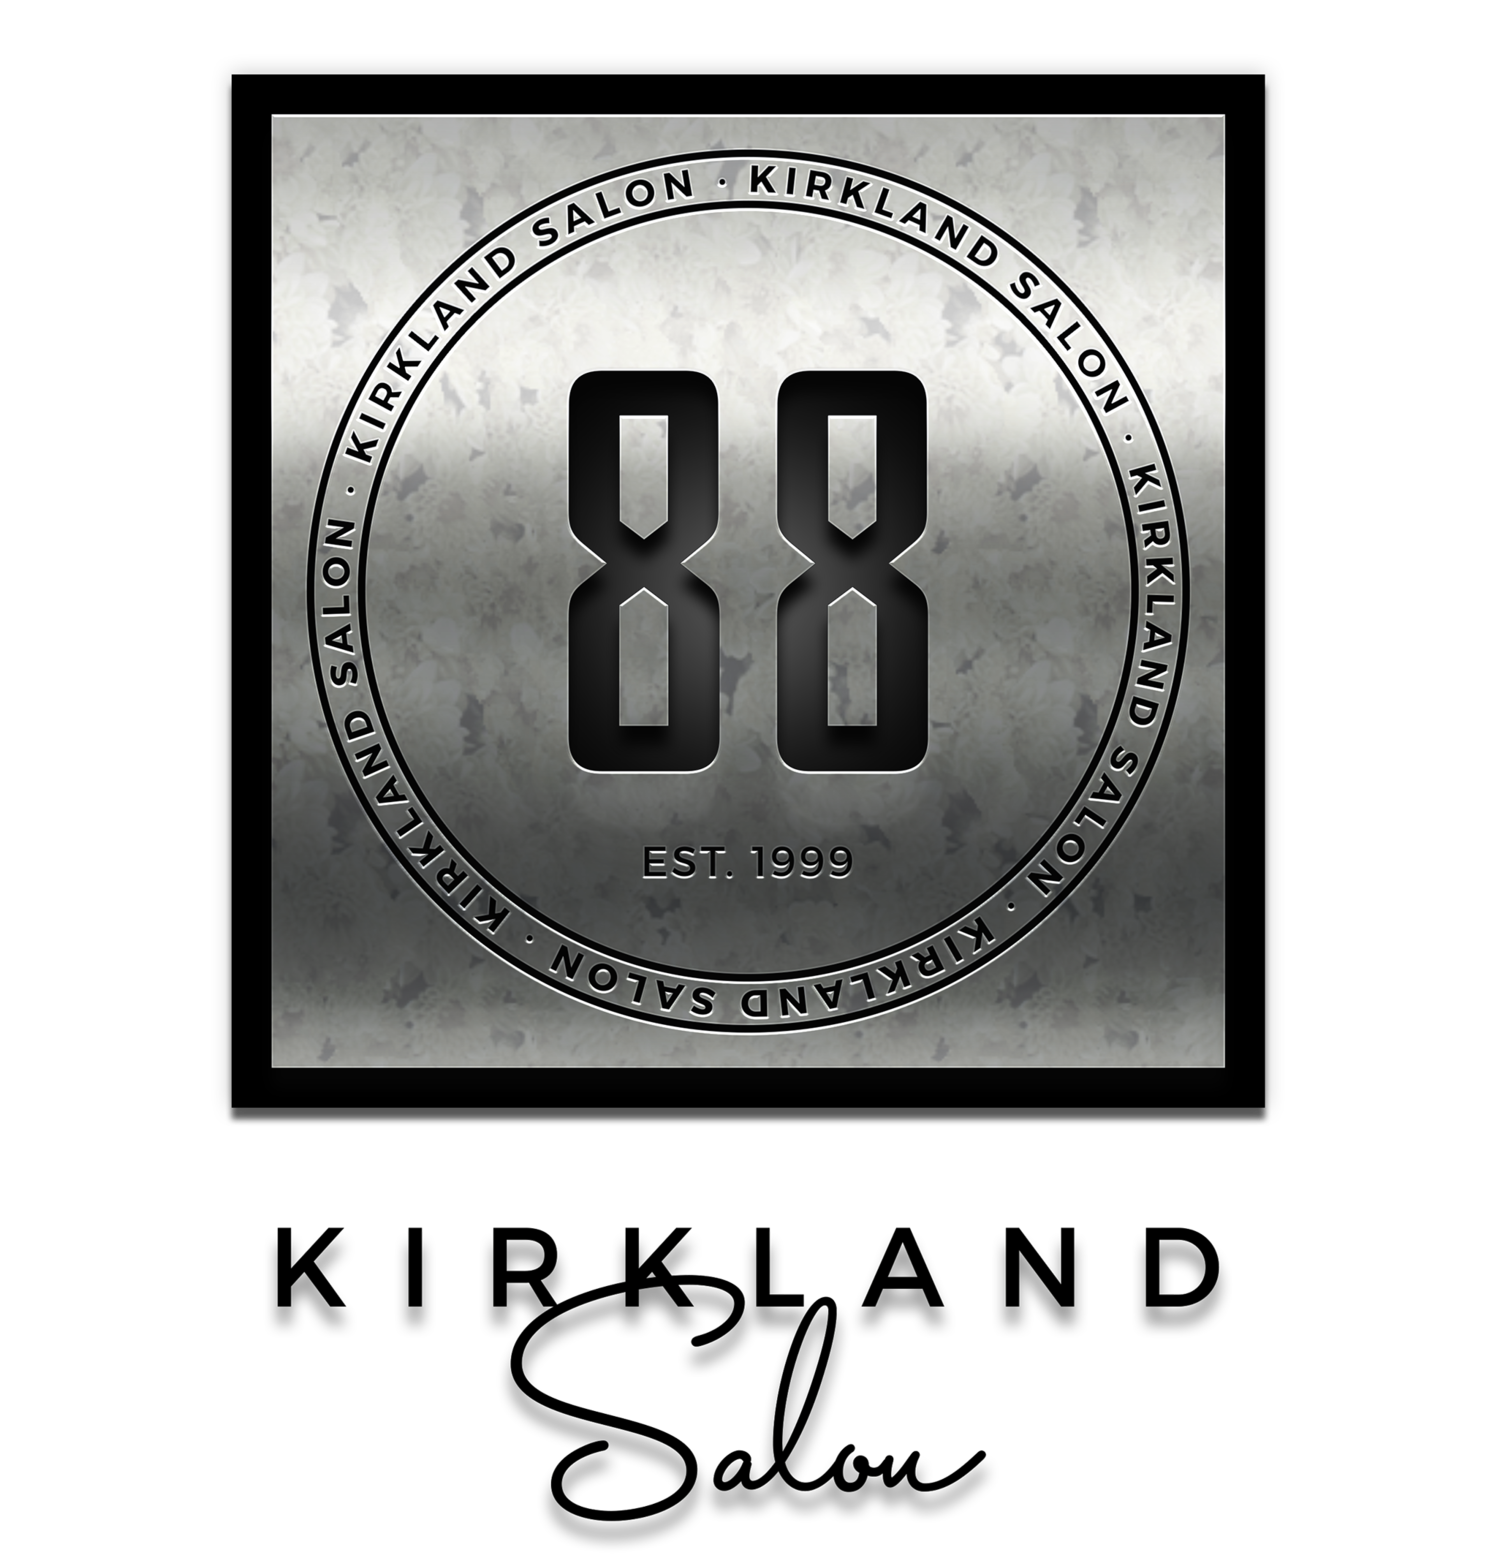 88 Kirkland Salon